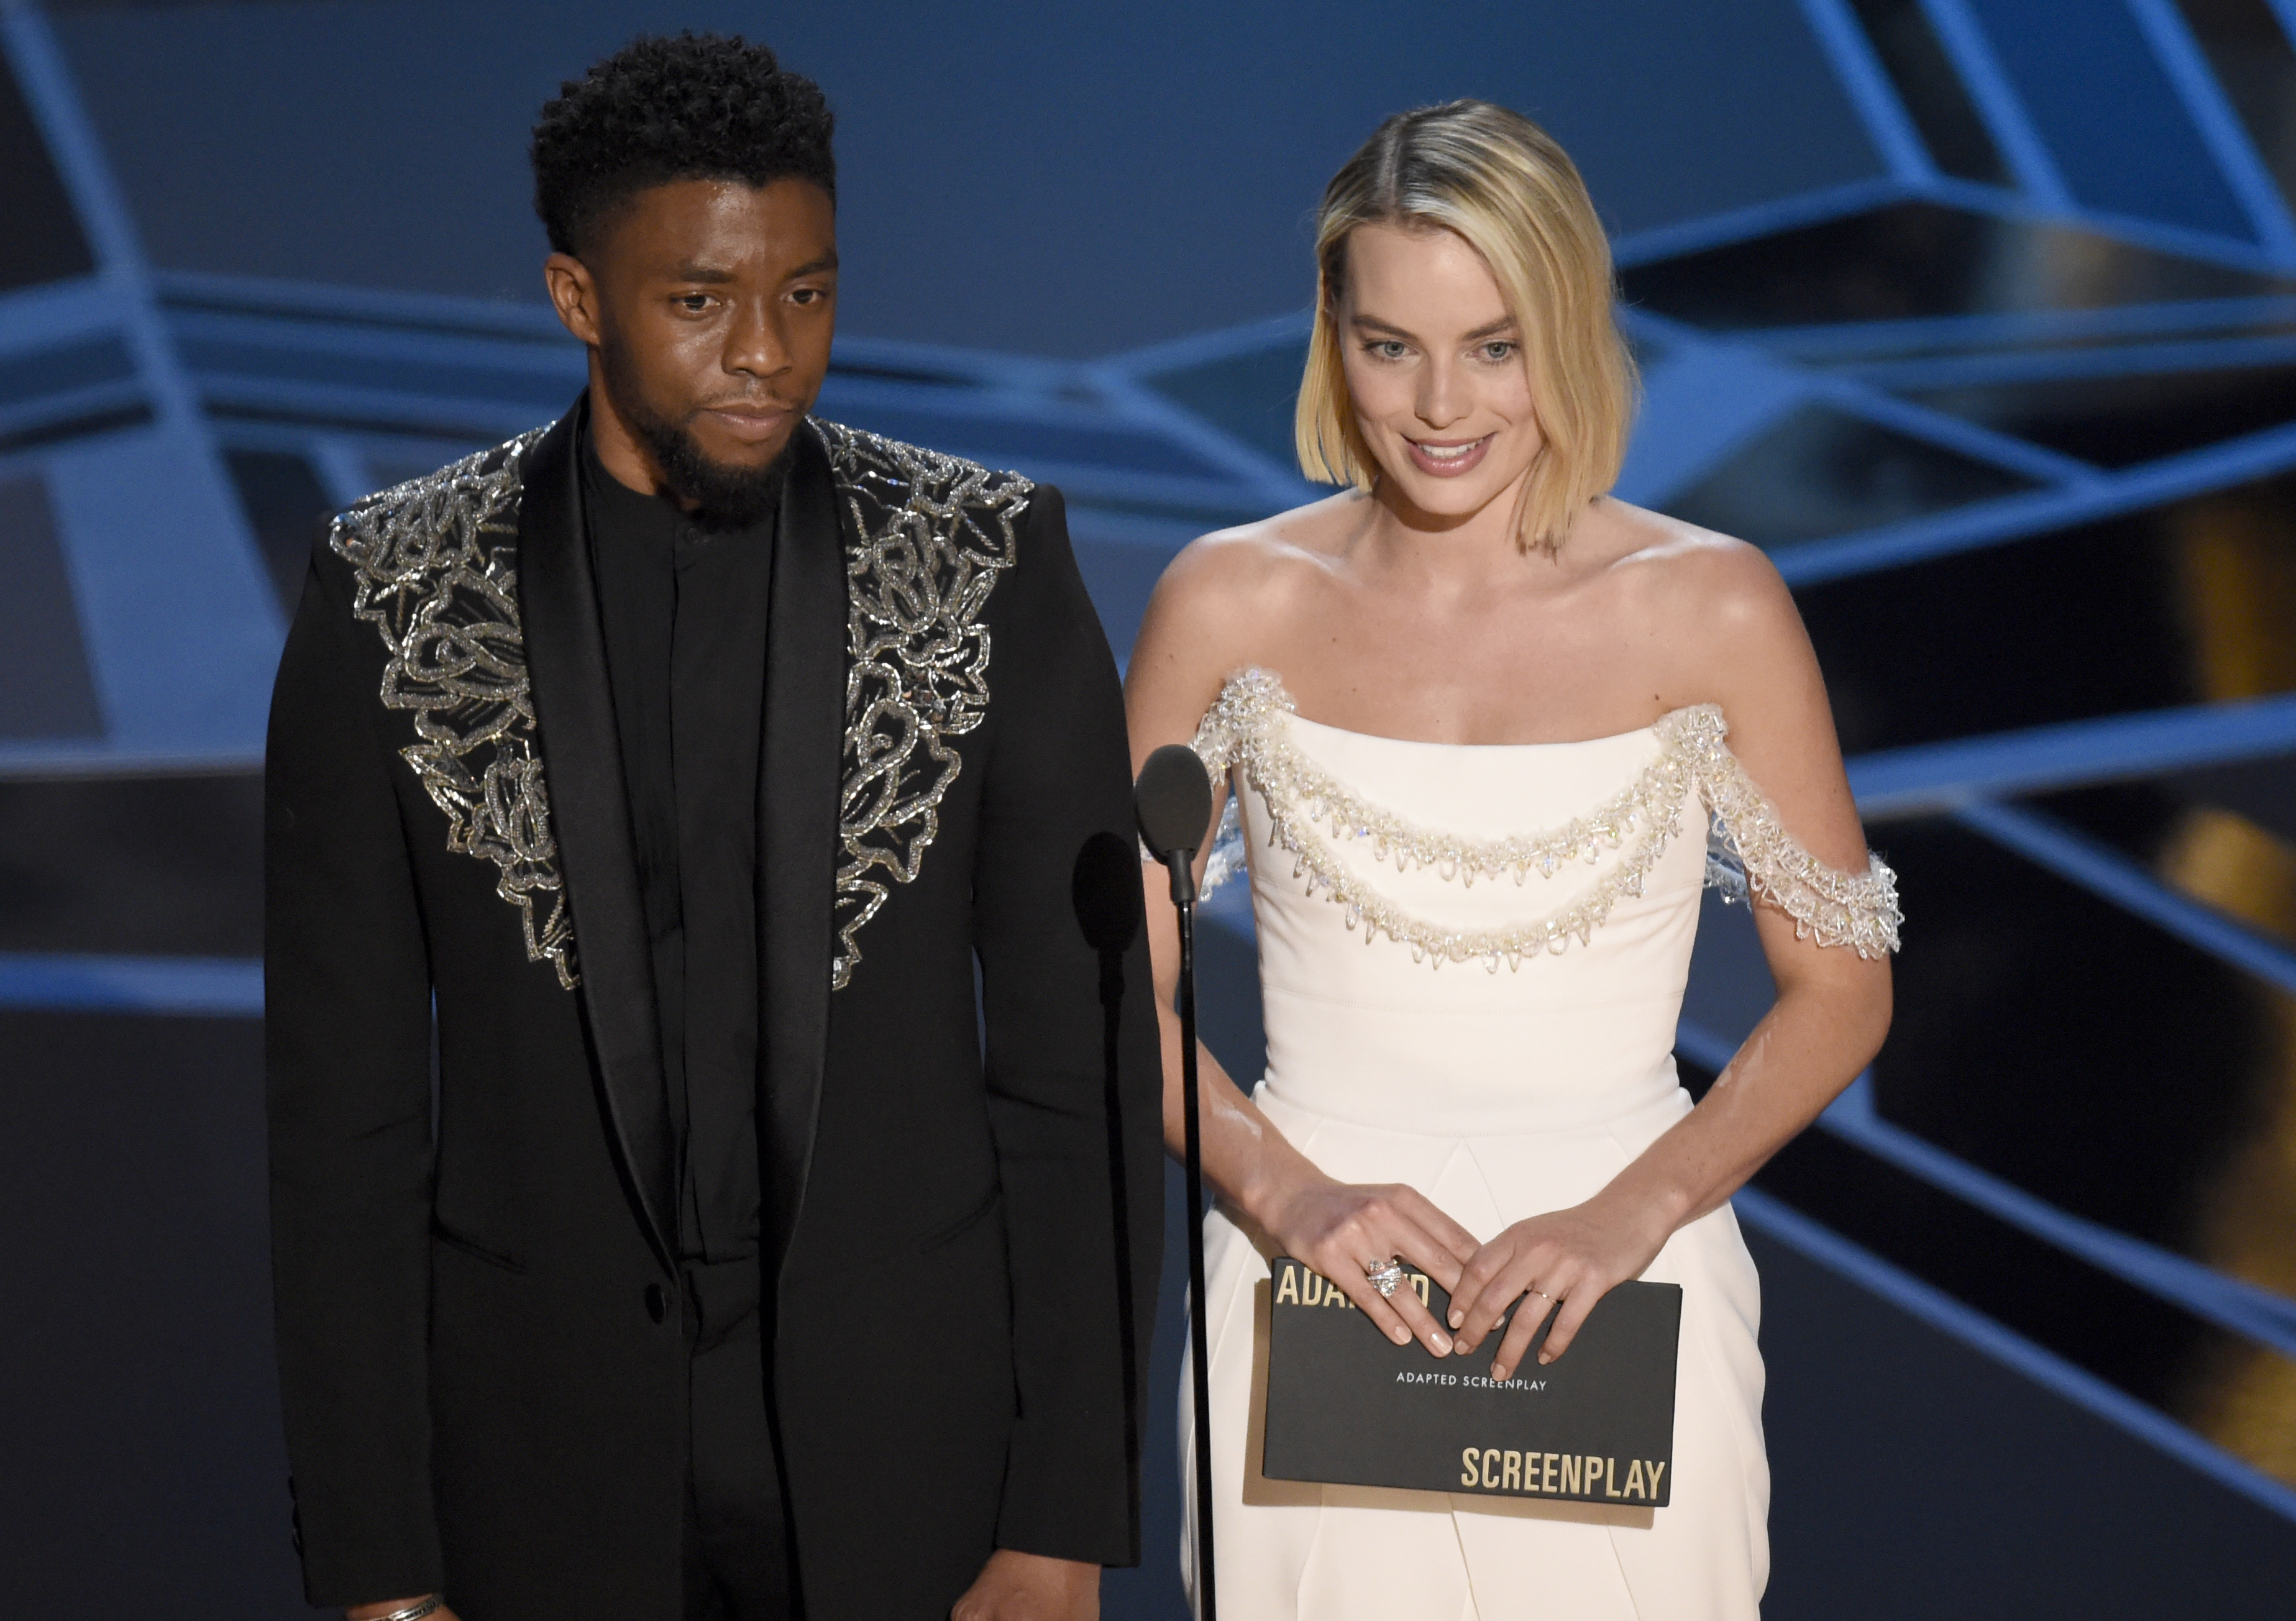 Chadwick Boseman, left, and Margot Robbie present the award for best adapted screenplay at the Oscars 2018